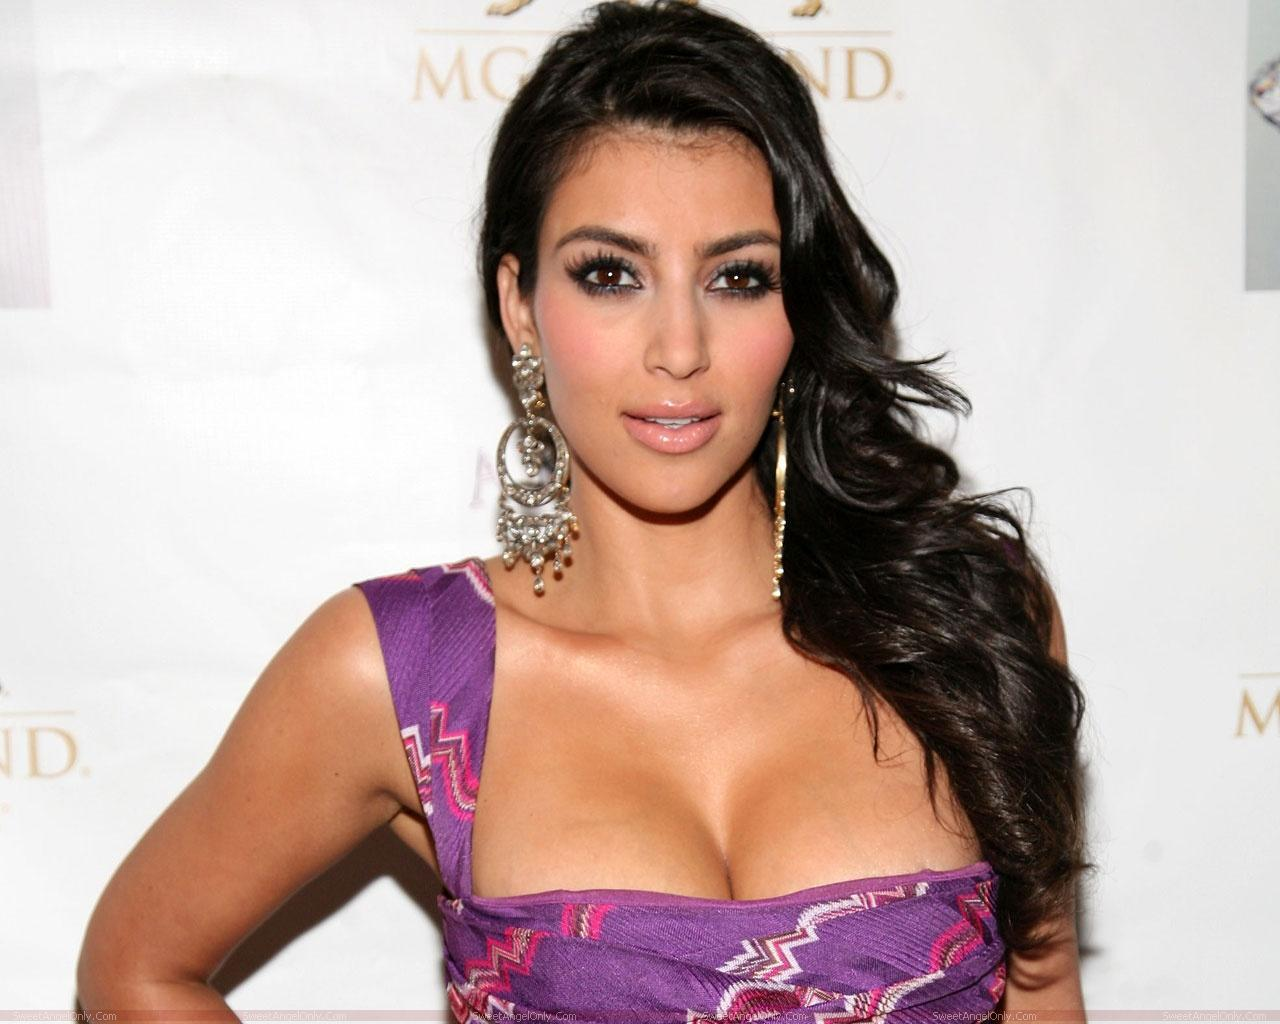 Kim Kardashian Fotos HuffPost Voces Huffington Post